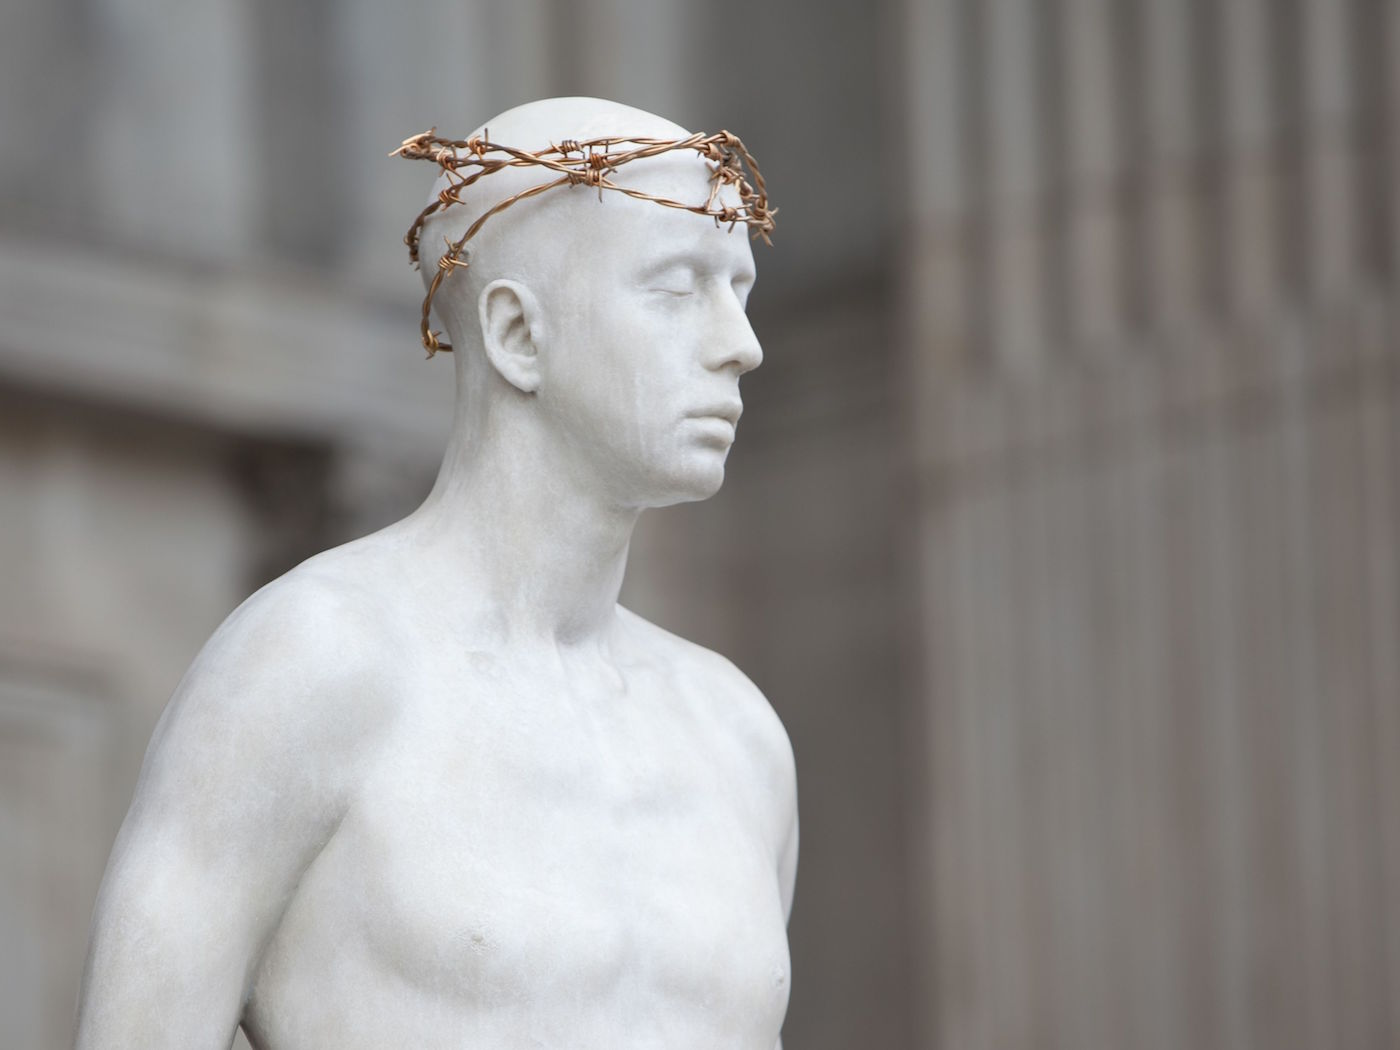 Mark Wallinger, Ecce Homo, 1999 - 2000White marbleised resin, gold-plated barbed wire, Life sizeInstallation view St. Paul's Cathedral, London/UK, 2017Courtesy the artist and Hauser & WirthPhoto: © Graham Lacdao